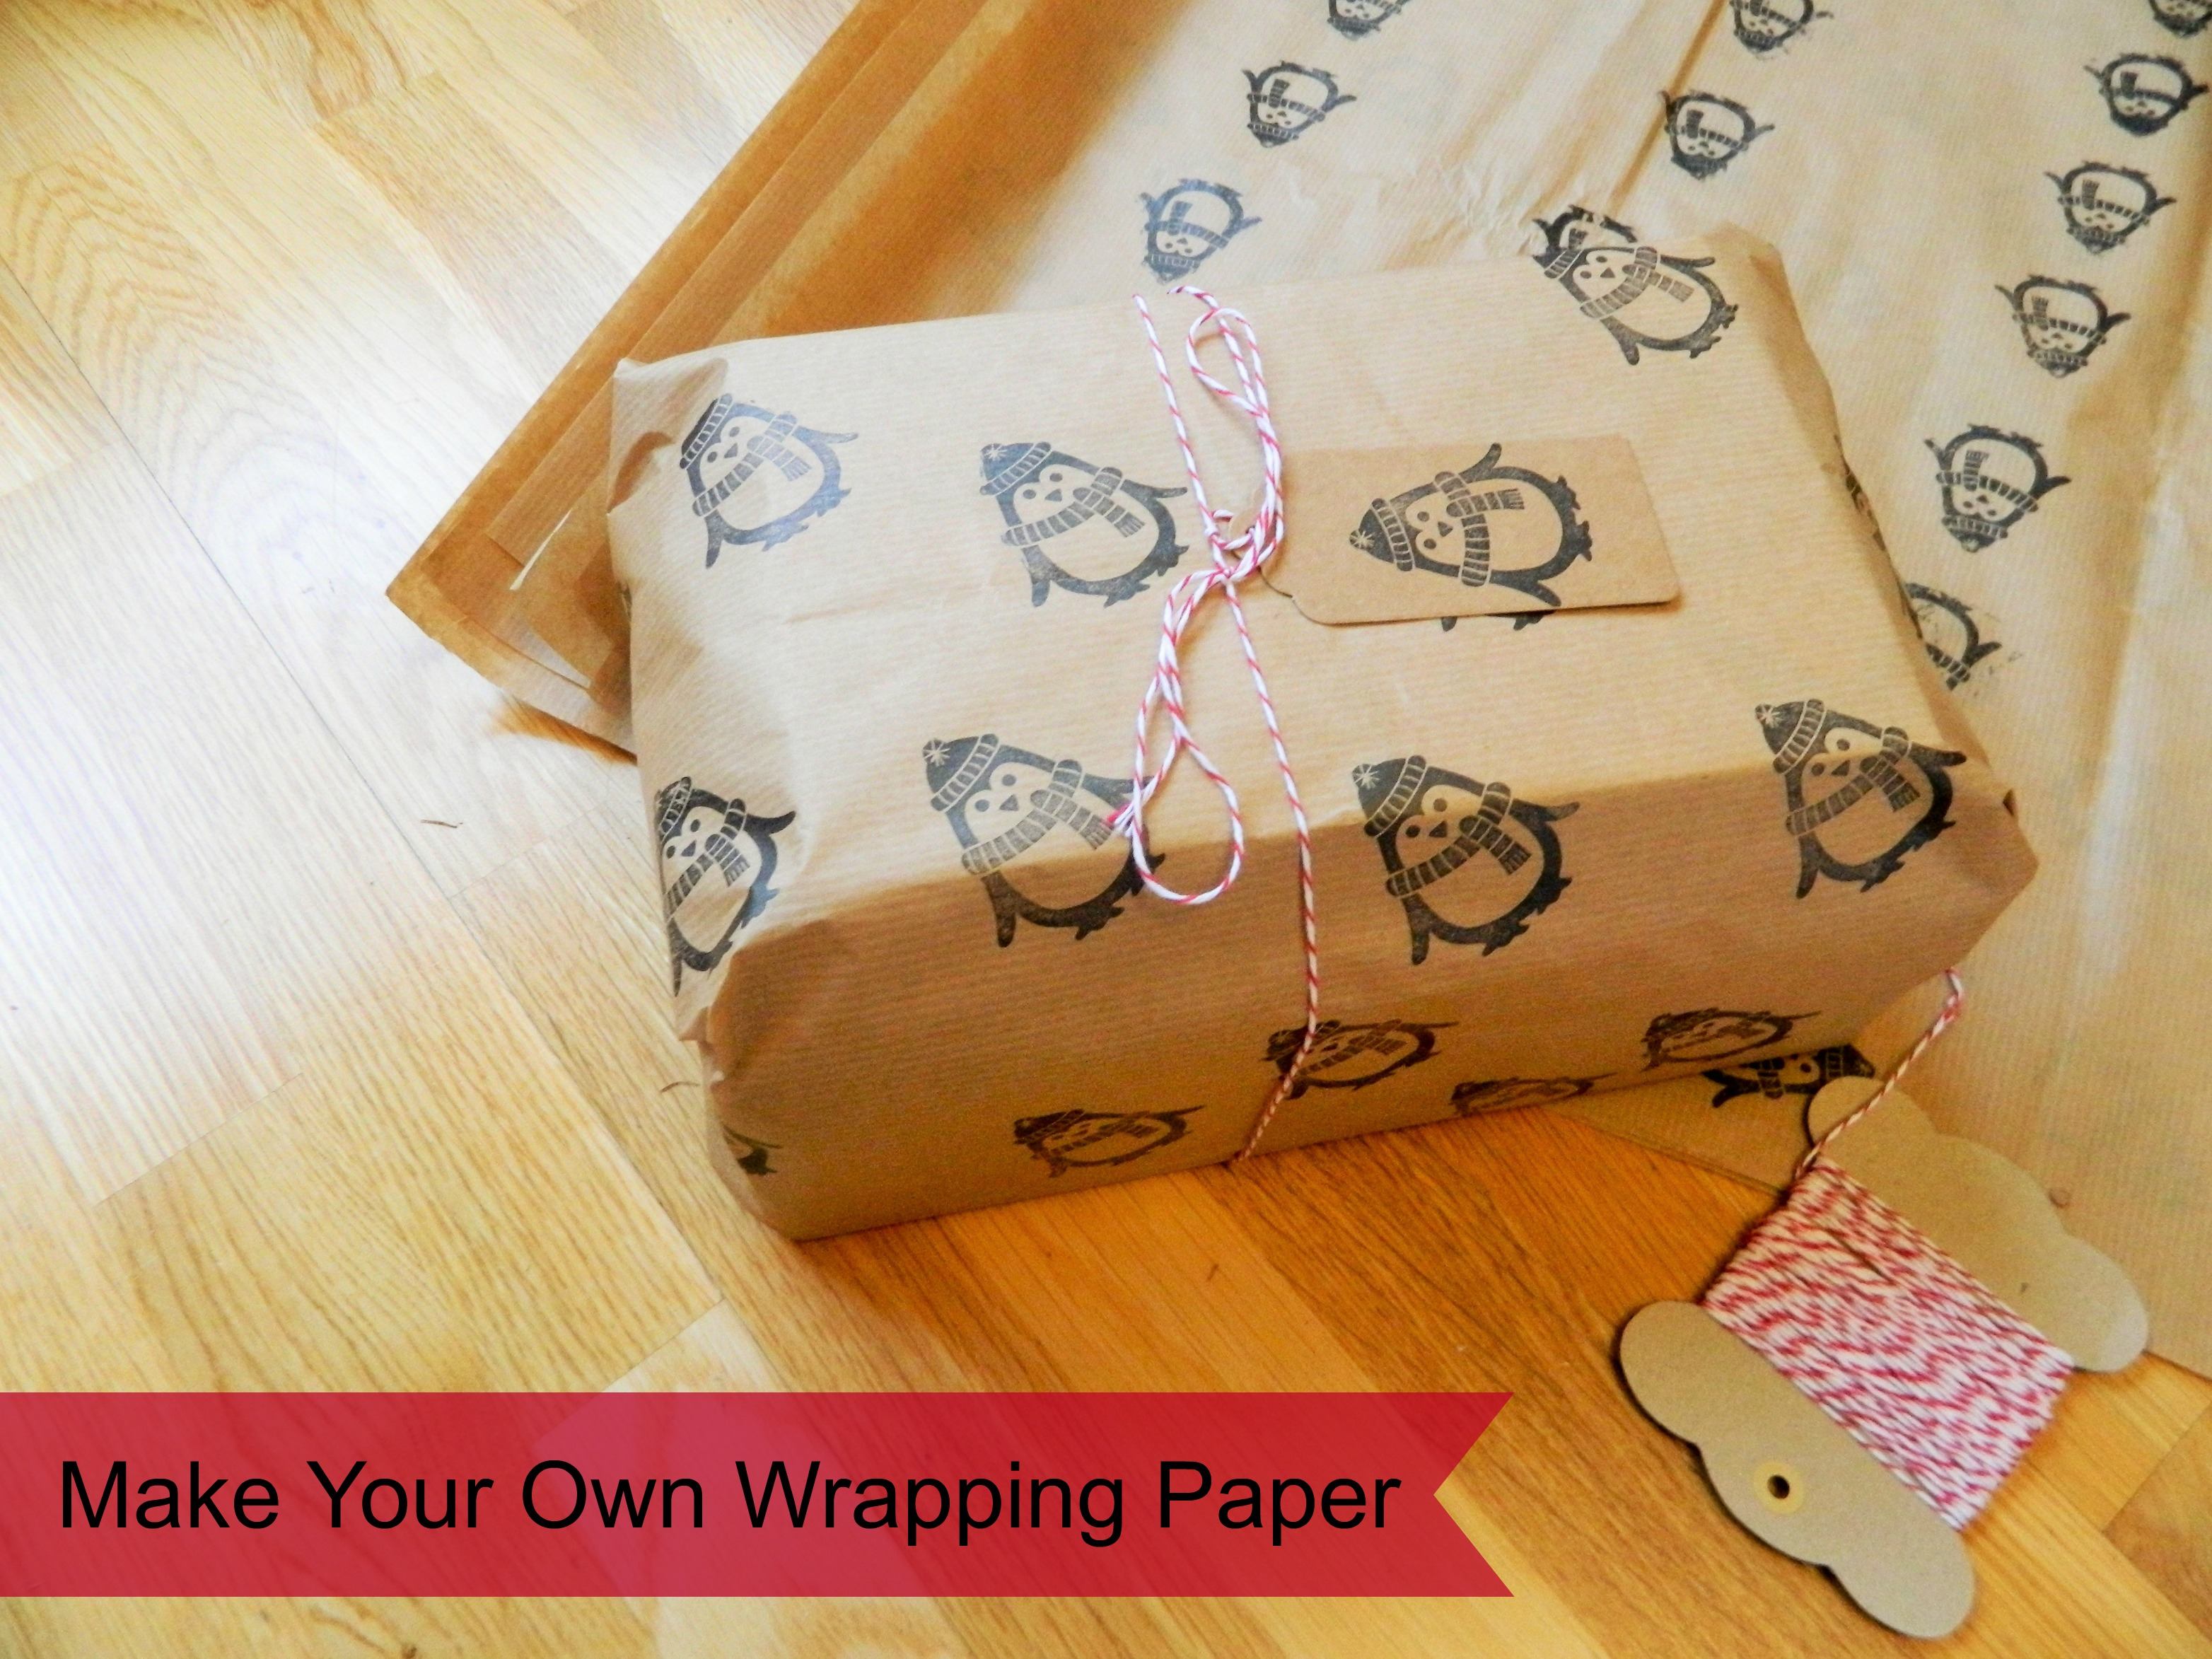 Make your own wrapping paper Make Your Own Wrapping Paper